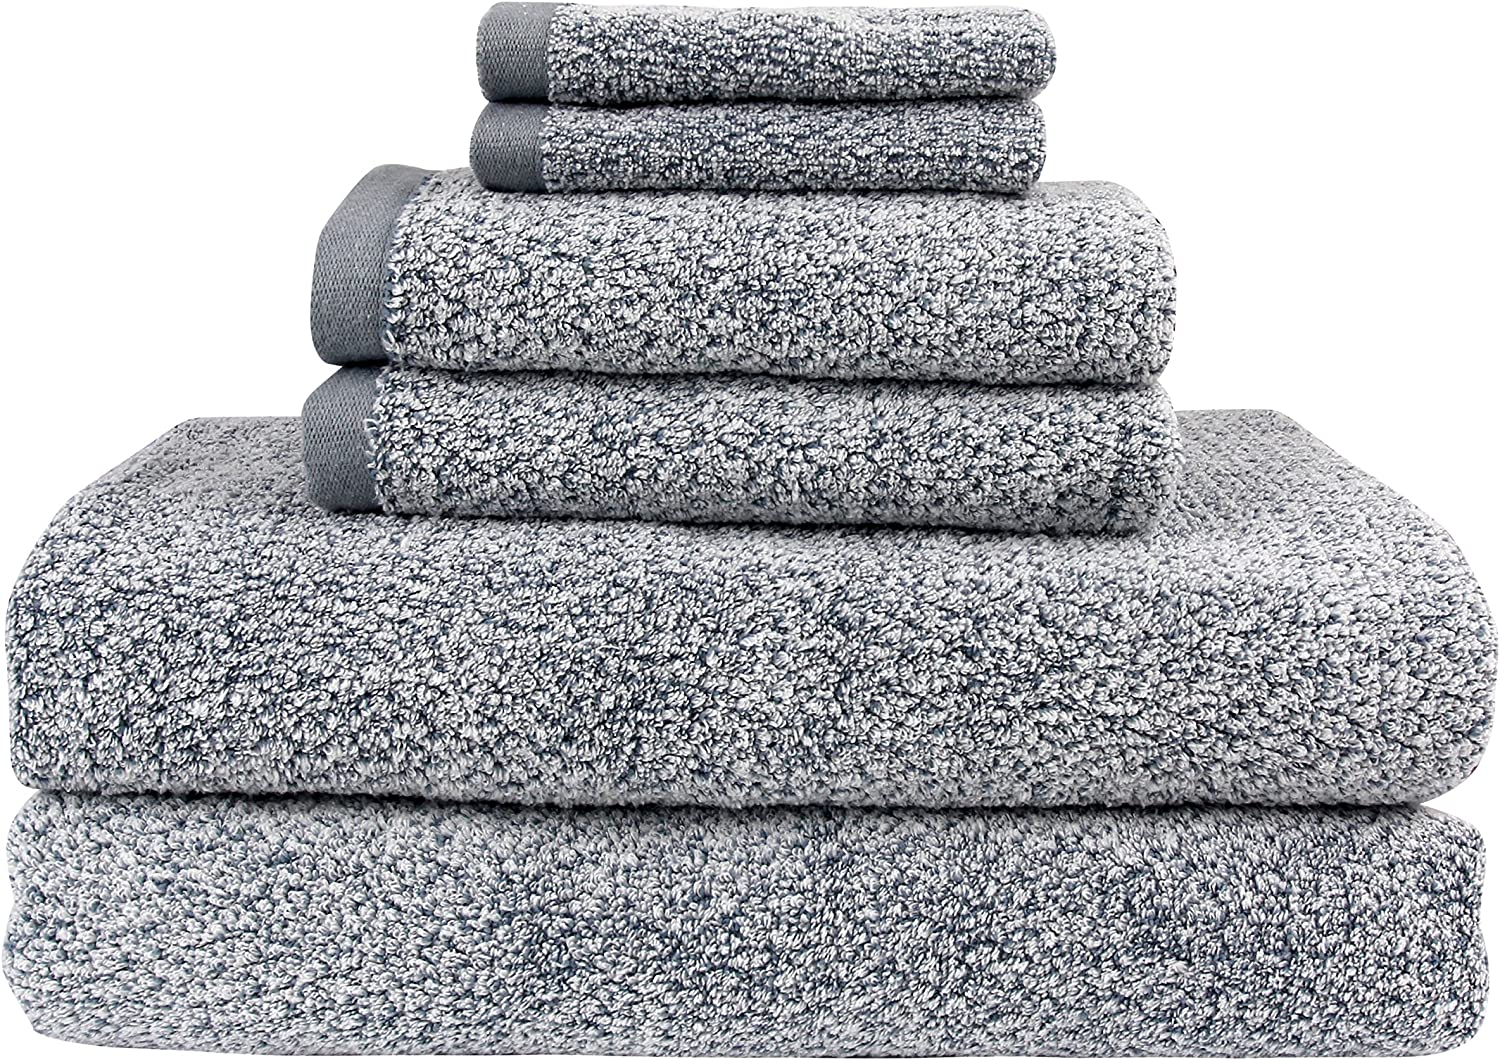 Everplush Diamond Jacquard Bath Sheet 6 Piece Value Pack in Dusk